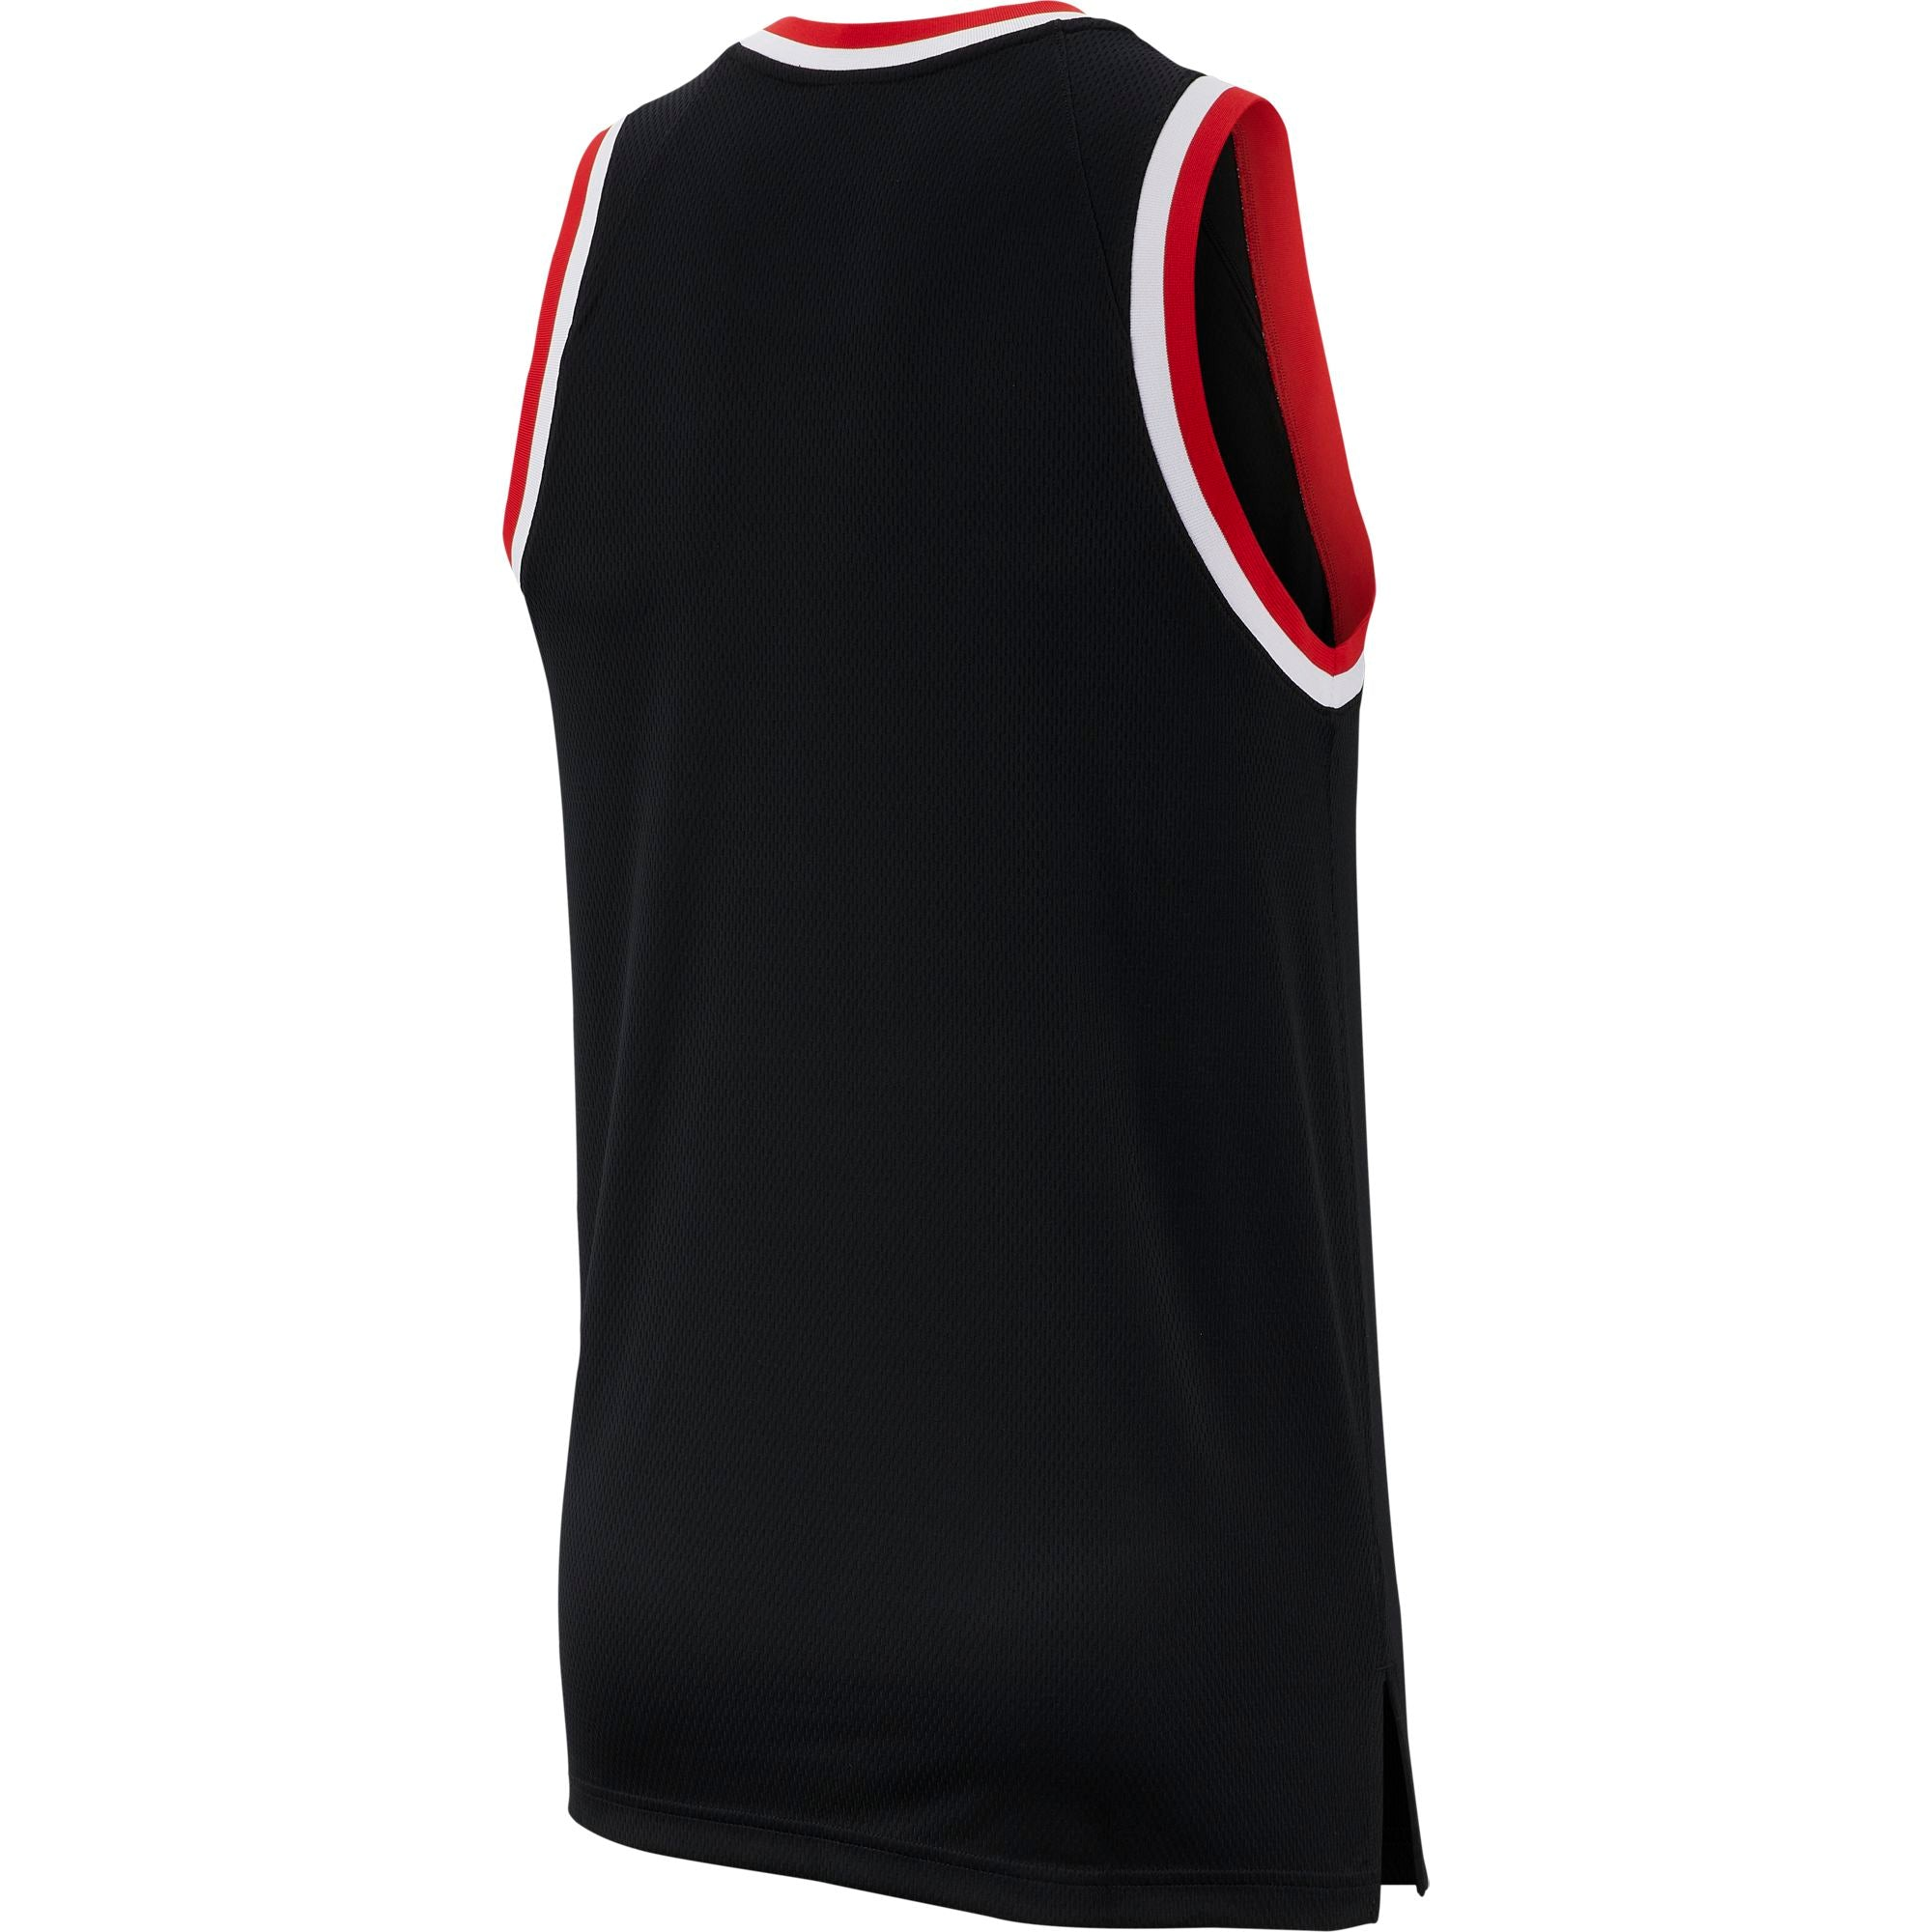 Nike Basketball Dri-fit Classic Jersey - Black/White